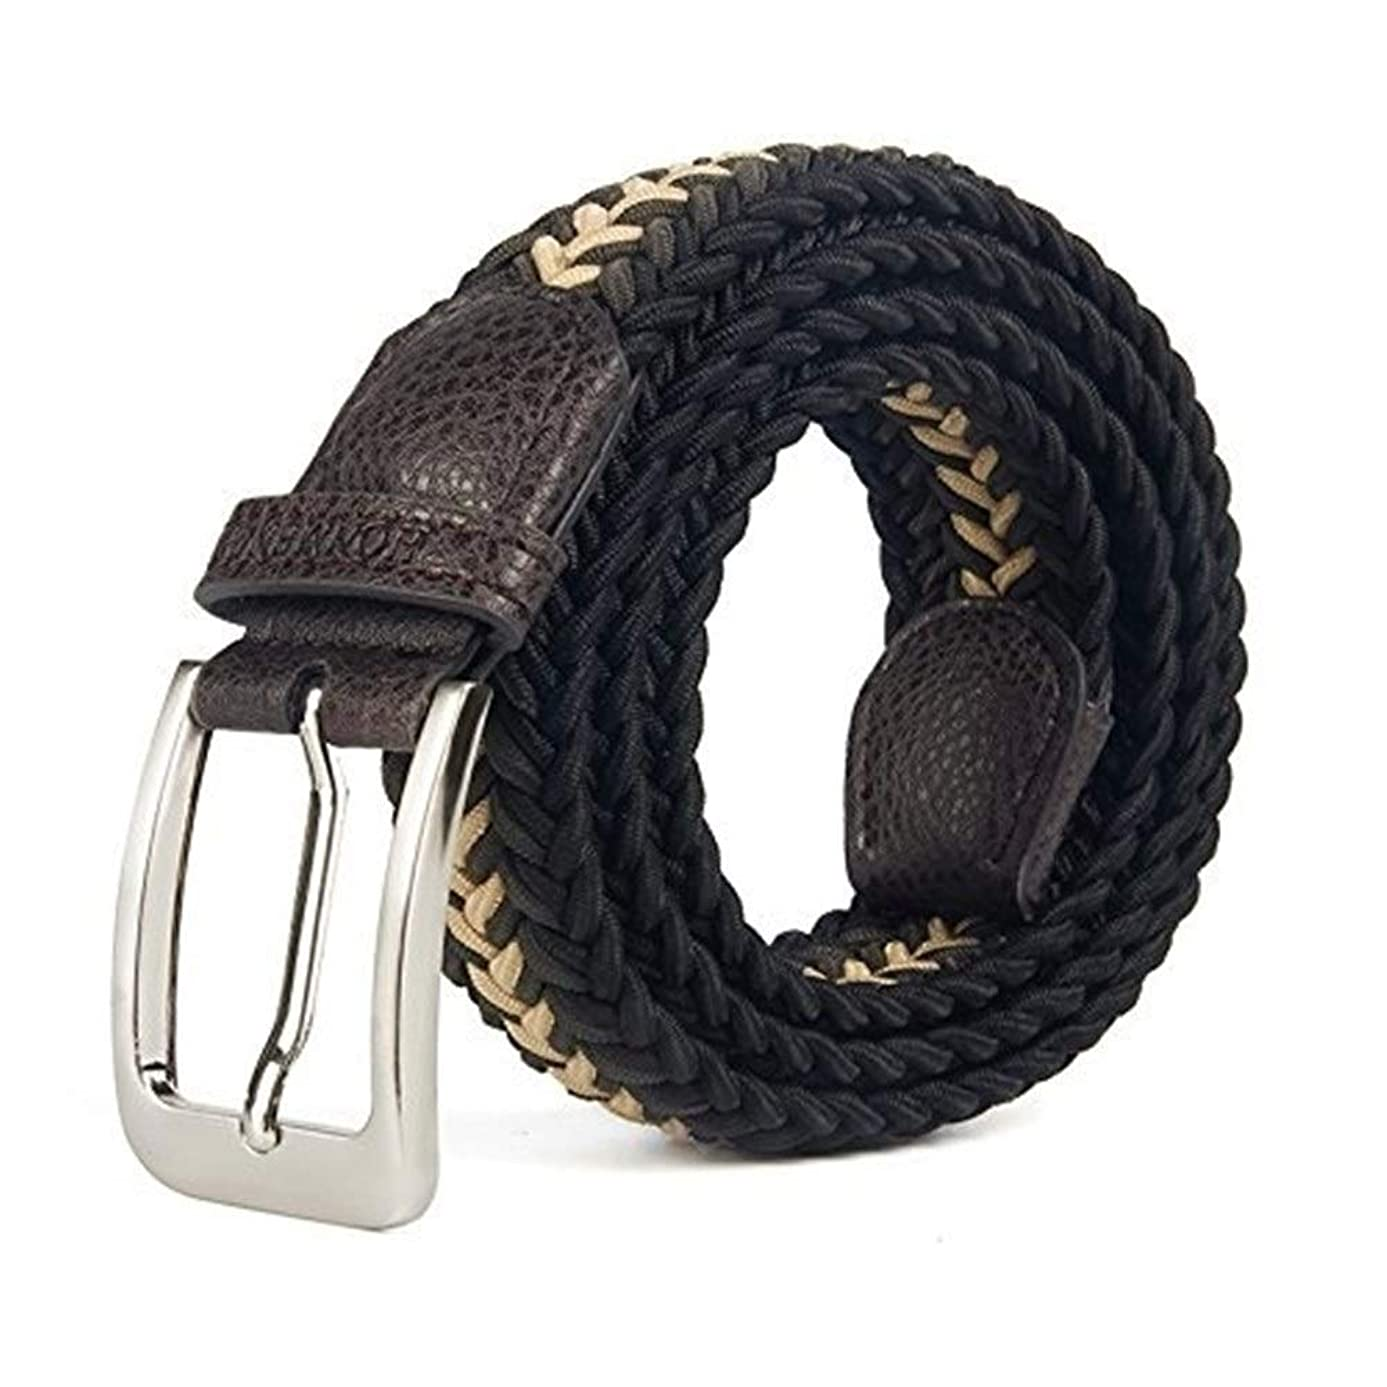 Belt Men Women Pin Buckle Casual Elastic Belt for Jeans by LTstore